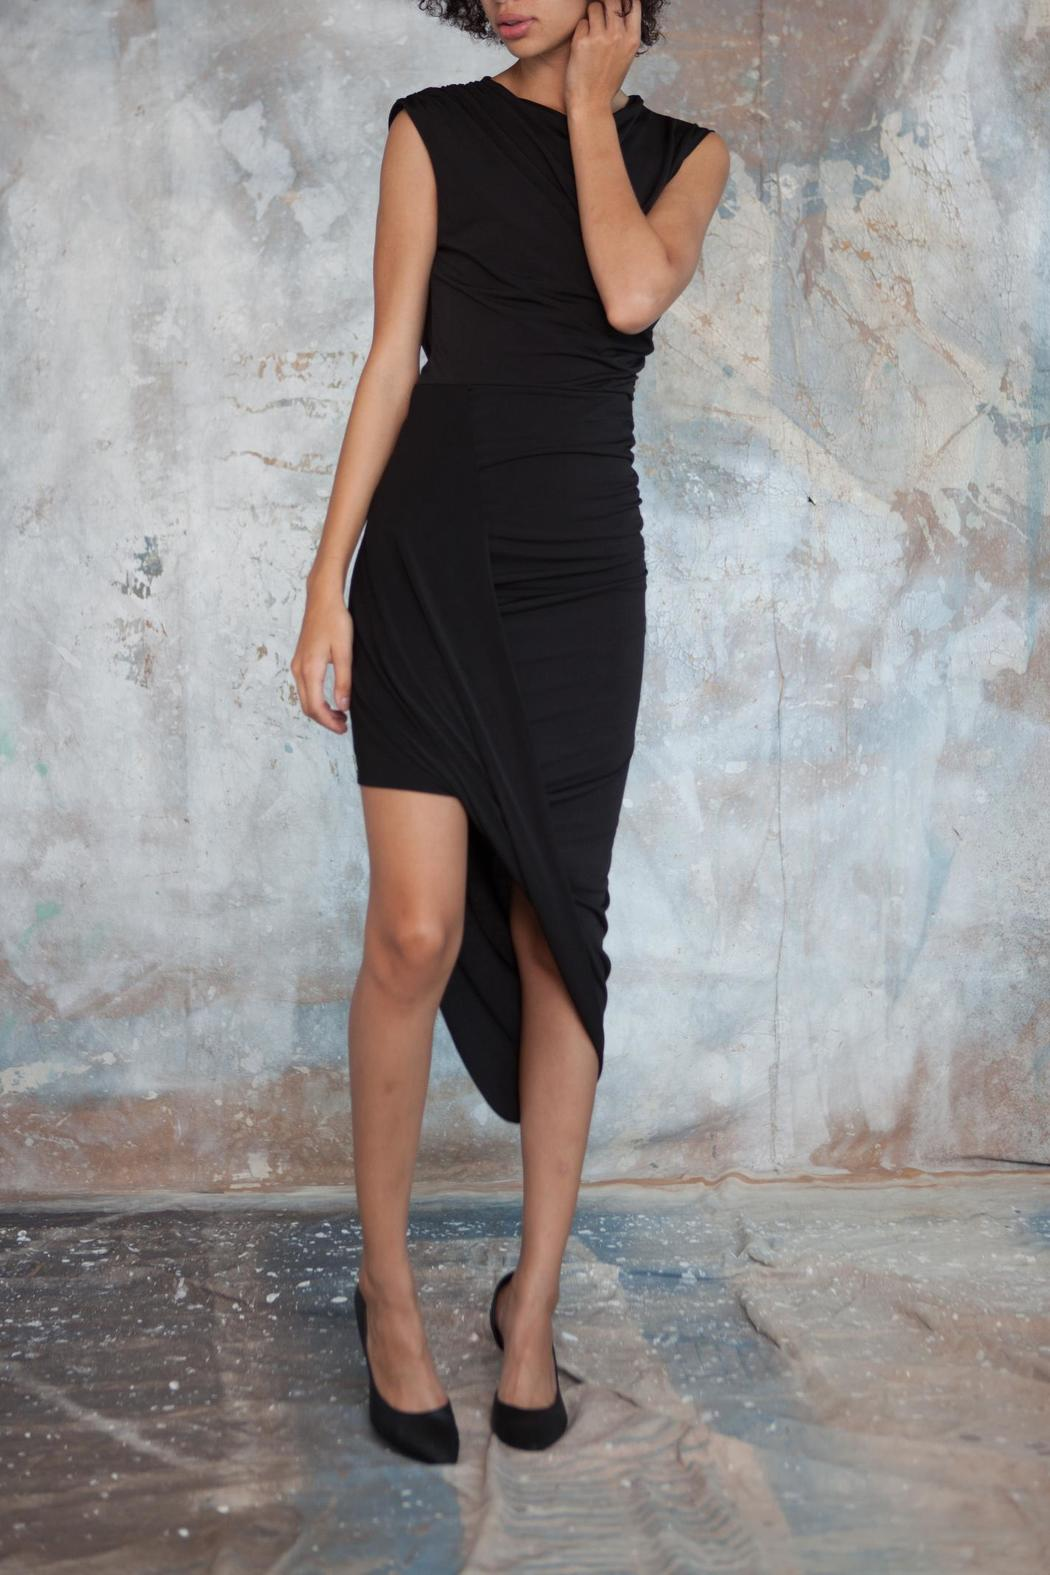 Alexia Klein Black Draped Dress - Side Cropped Image